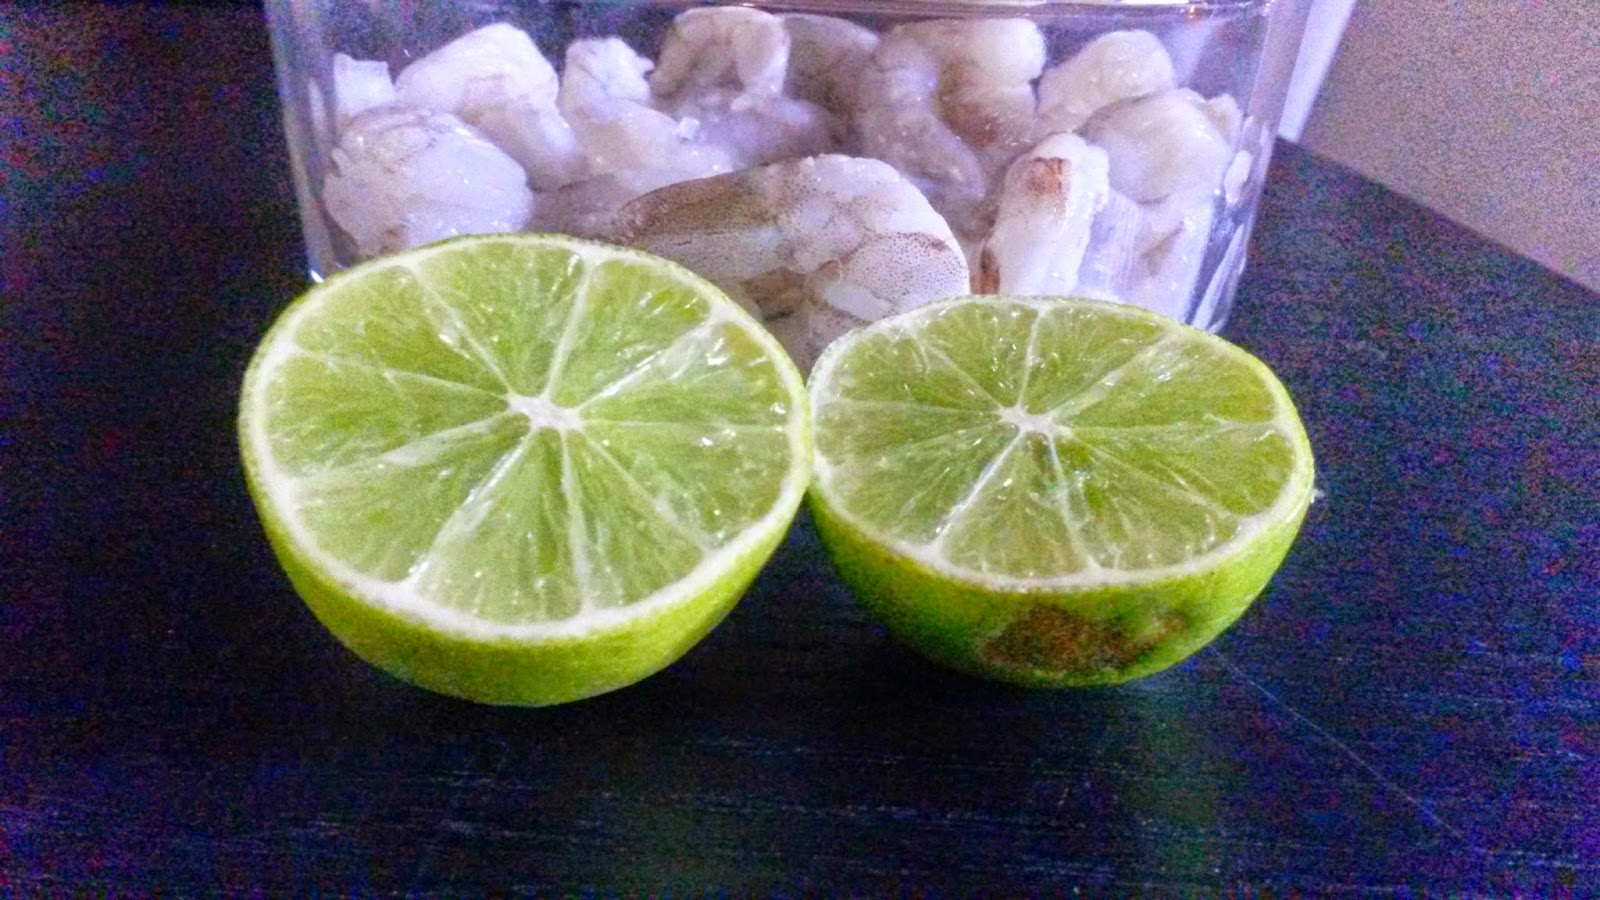 Delightful Shrimp and Limes for Prep